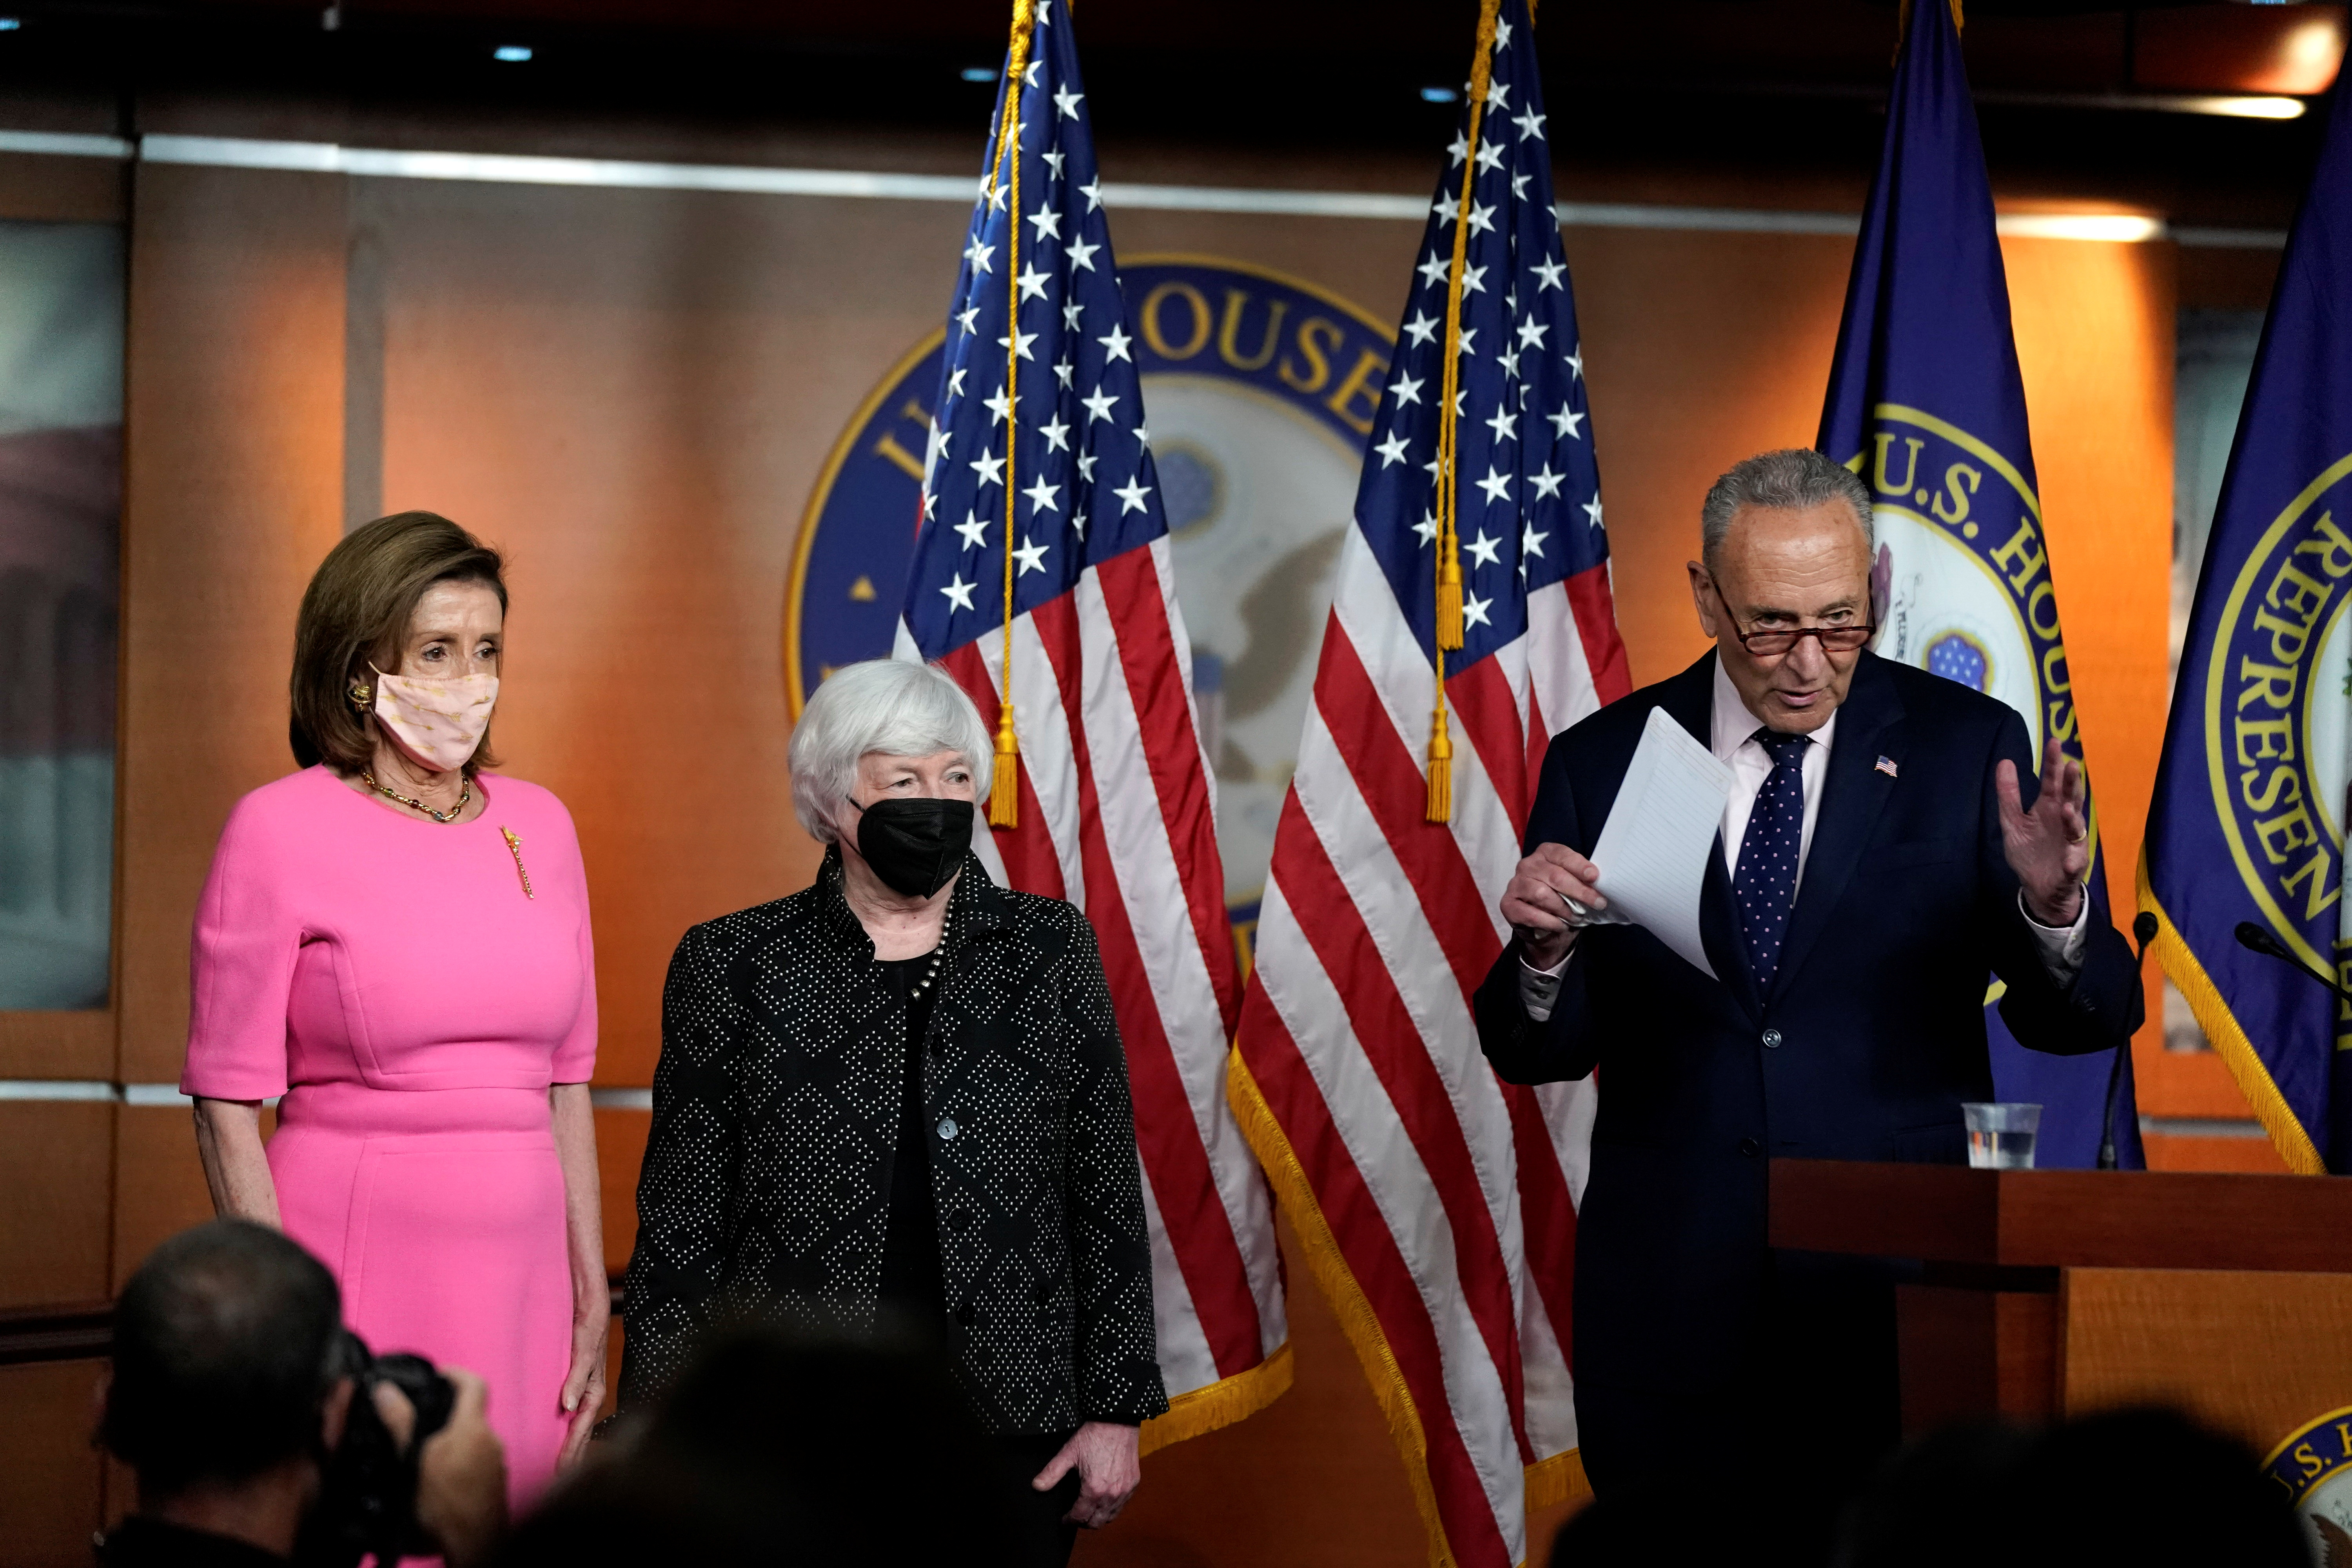 Senate Majority Leader Chuck Schumer makes a statement in attendance with Treasury Secretary Janet Yellen and U.S. House Speaker Nancy Pelosi (D-CA) before the start of Pelosi?s weekly news conference on Capitol Hill in Washington, U.S., September 23, 2021. REUTERS/Elizabeth Frantz